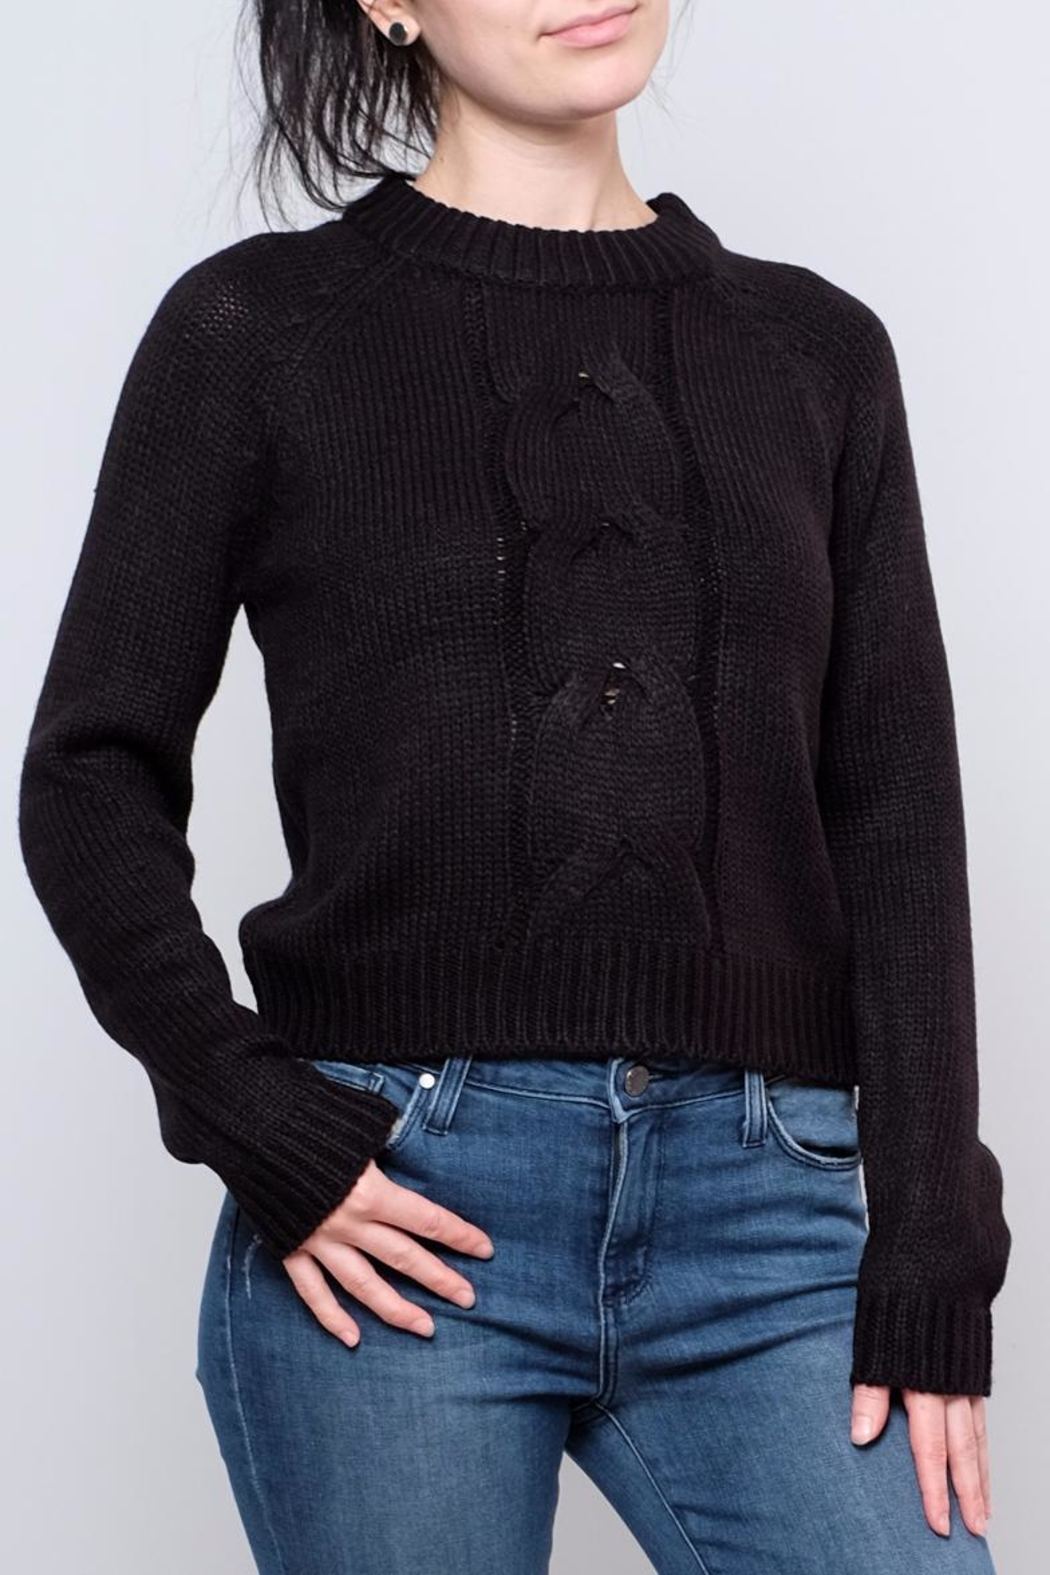 Noisy May Cropped Cableknit Sweater - Main Image